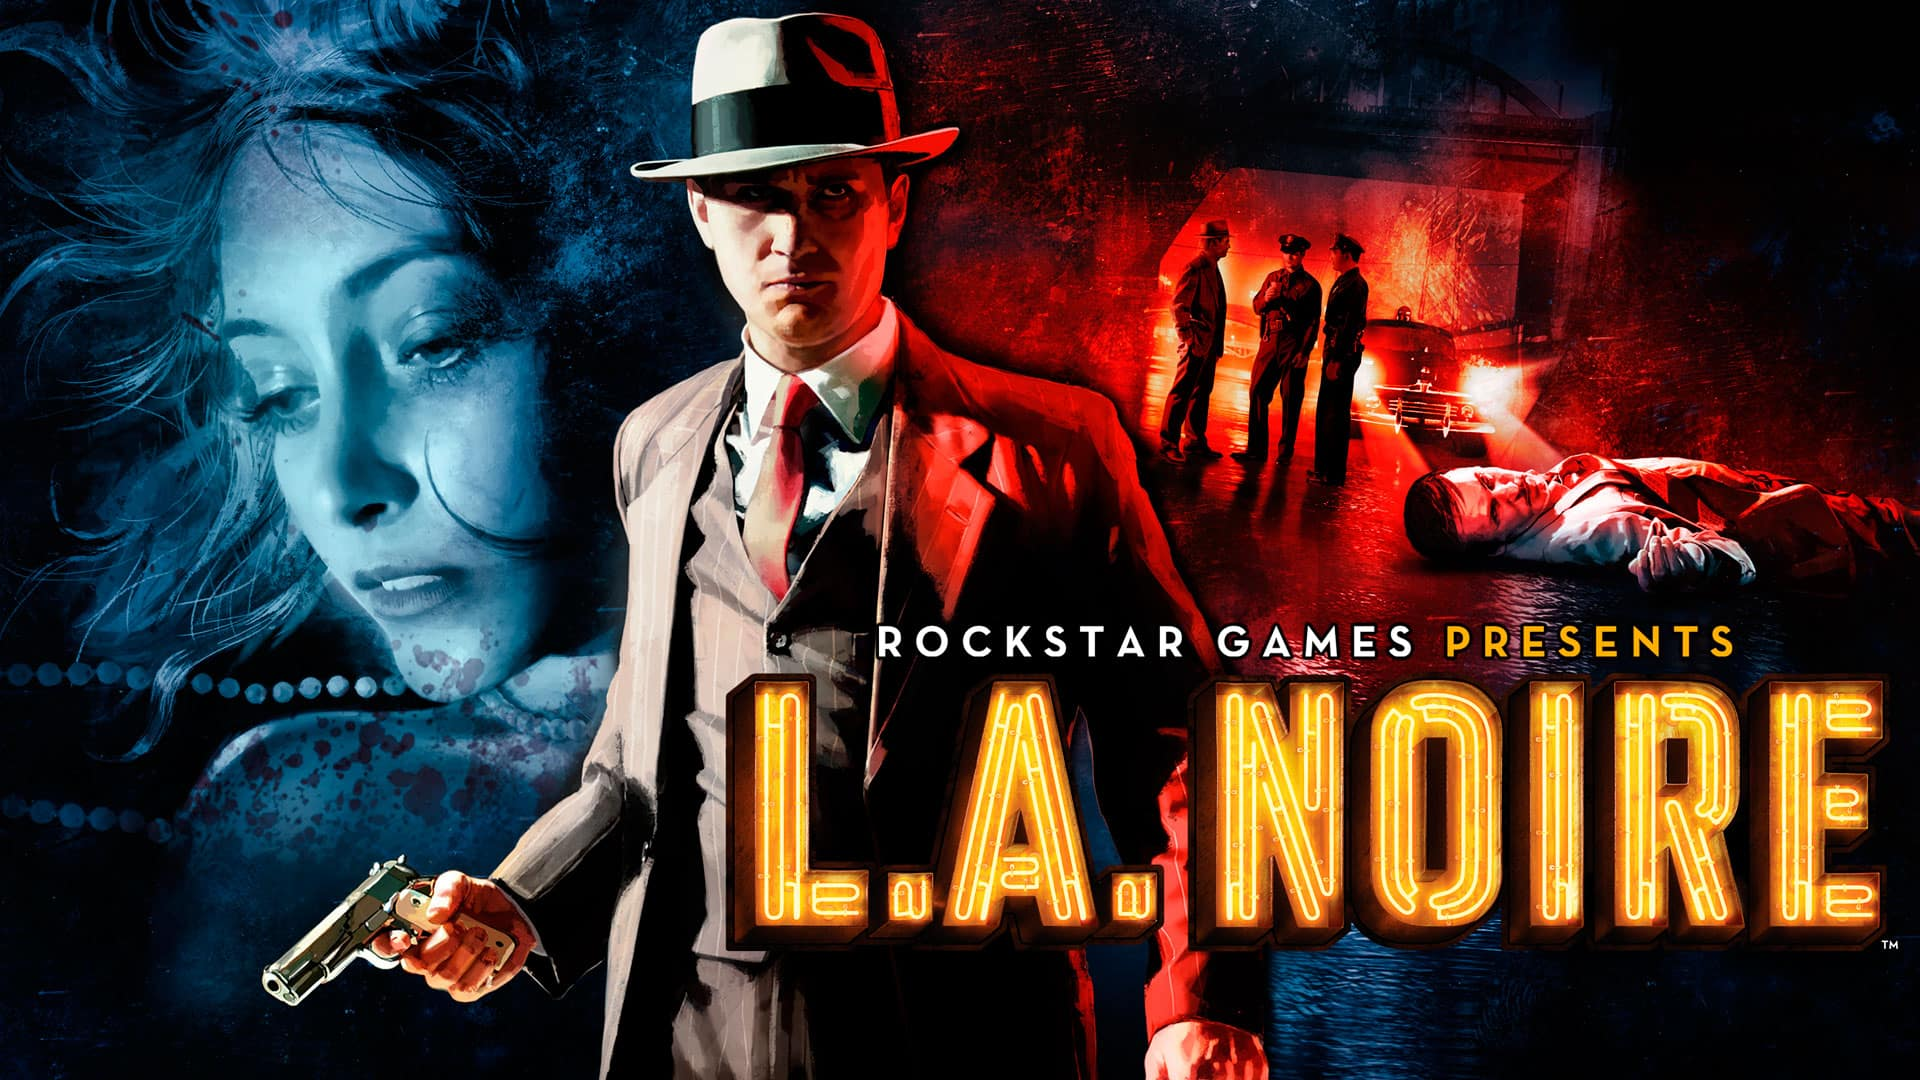 L.A. Noire for PC $6.99 (or Complete Edition for $8.99)